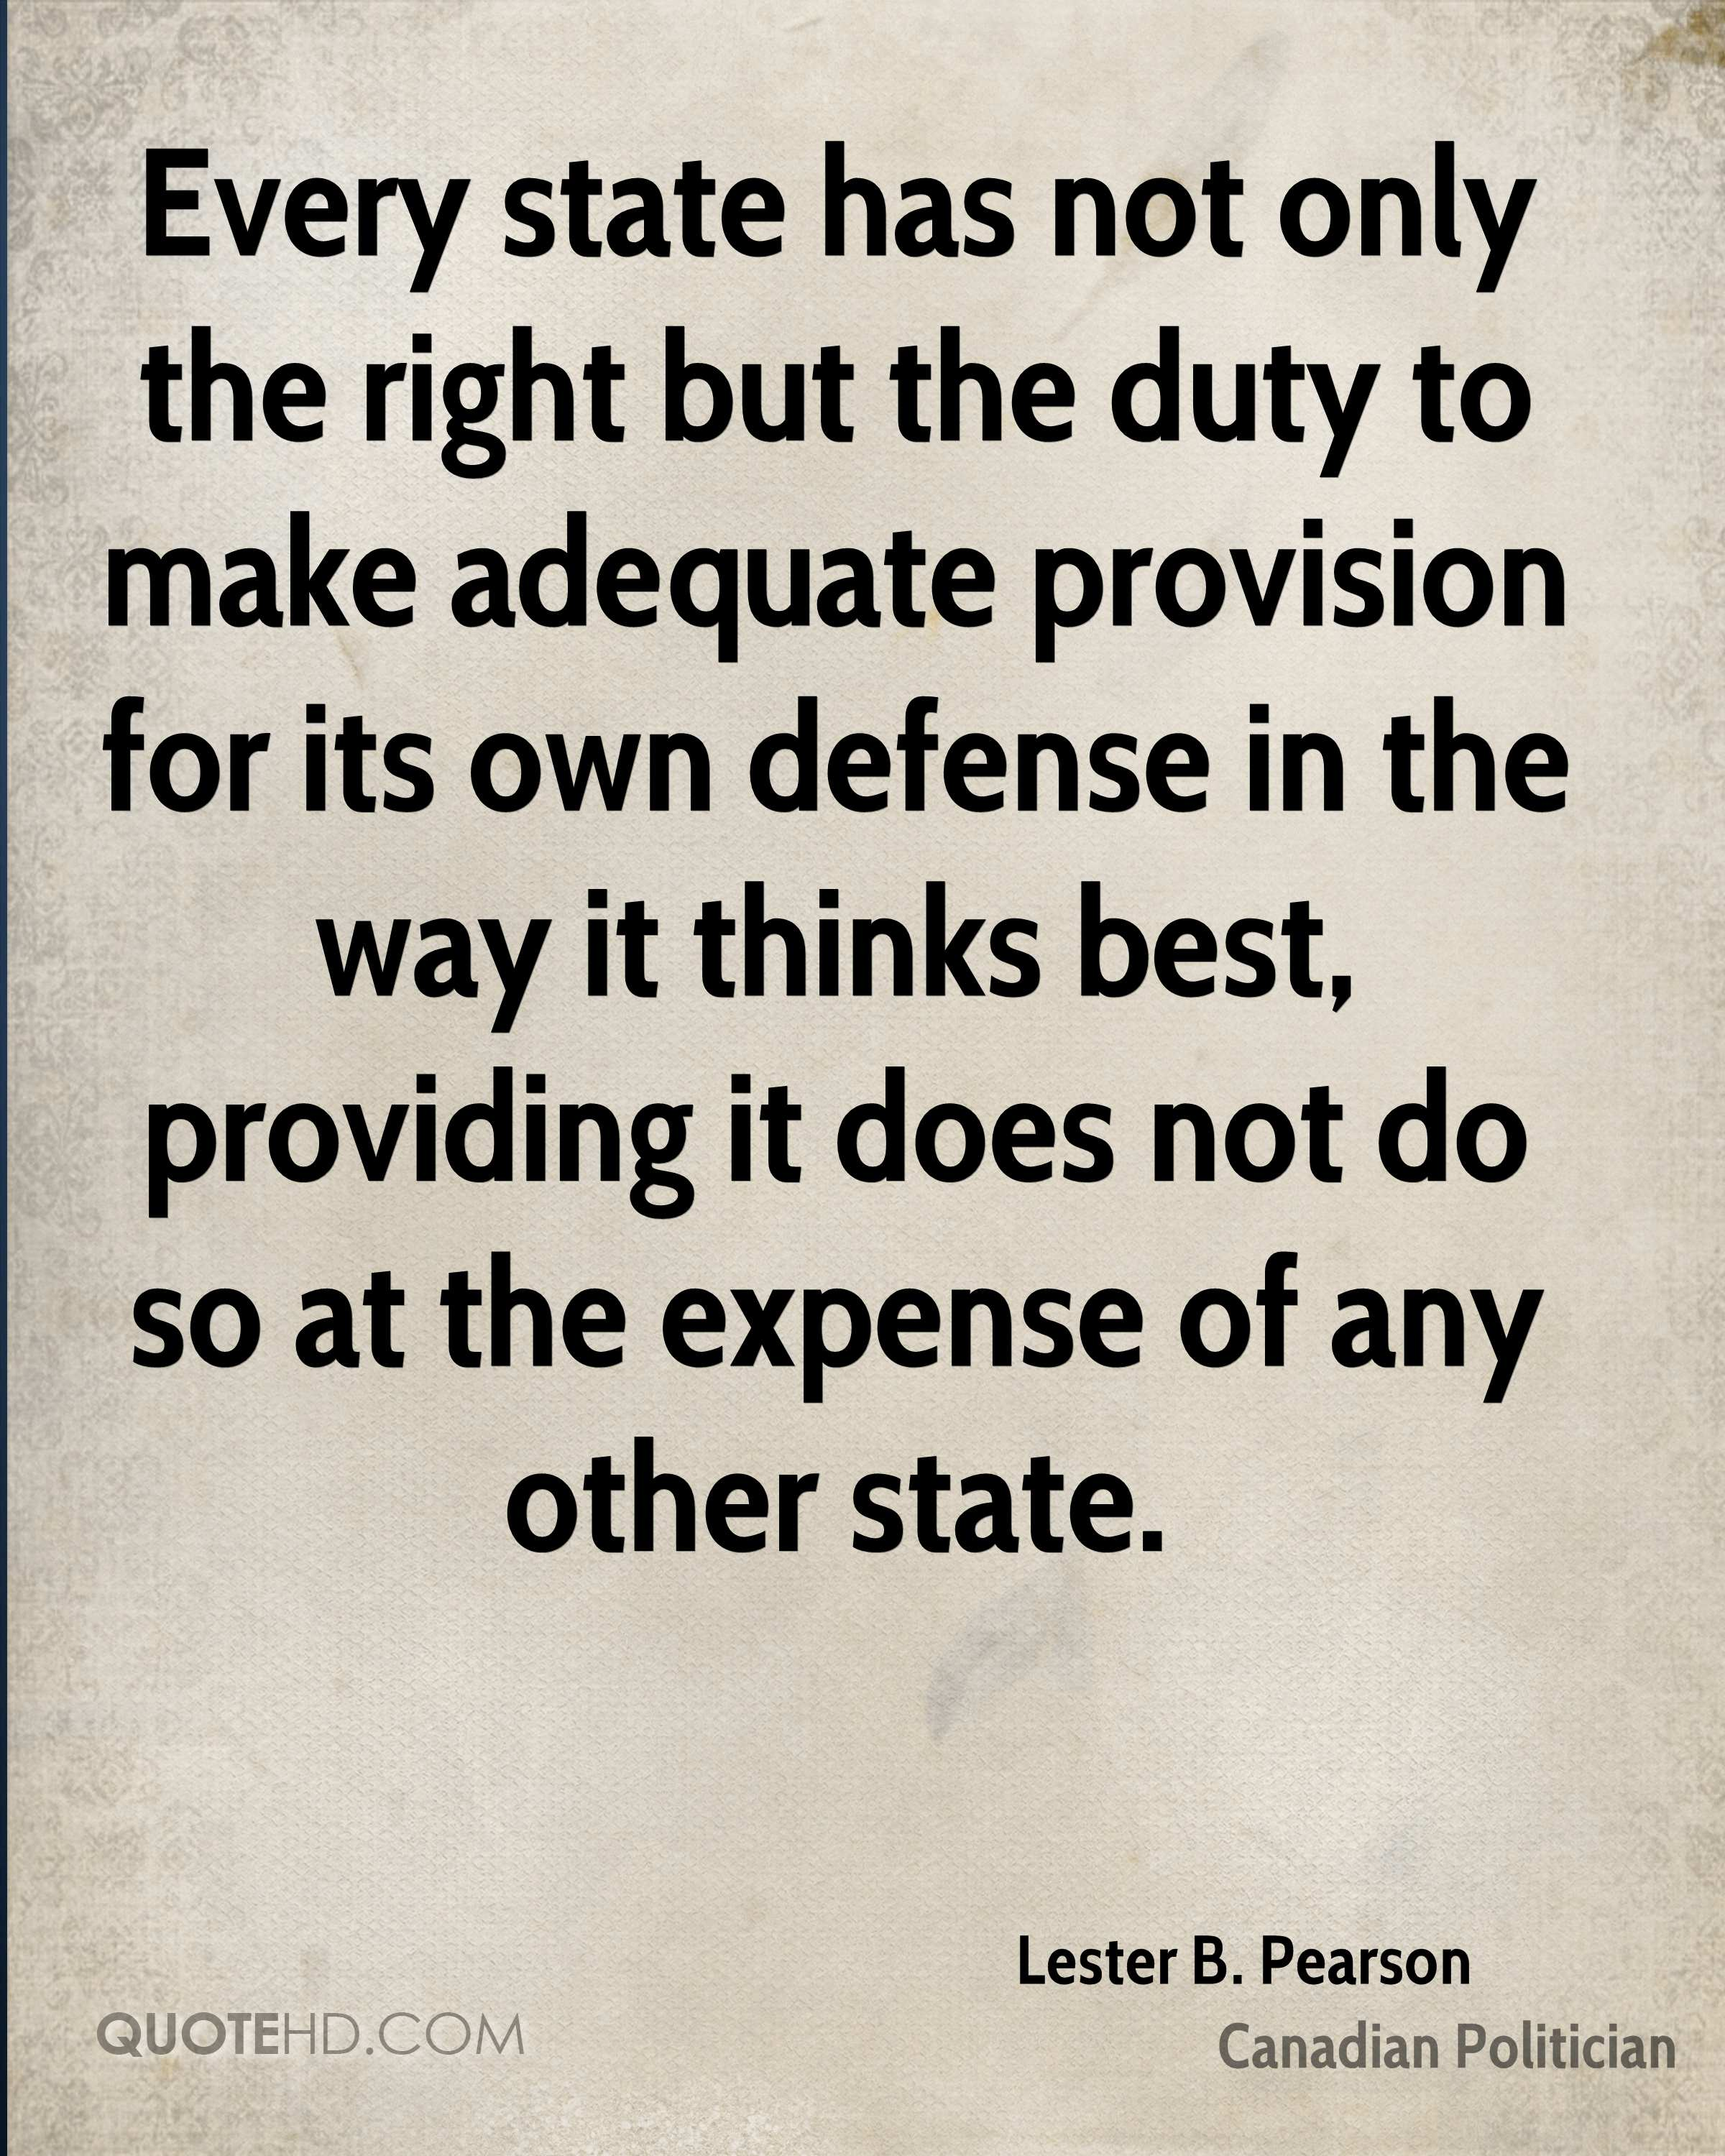 Every state has not only the right but the duty to make adequate provision for its own defense in the way it thinks best, providing it does not do so at the expense of any other state.